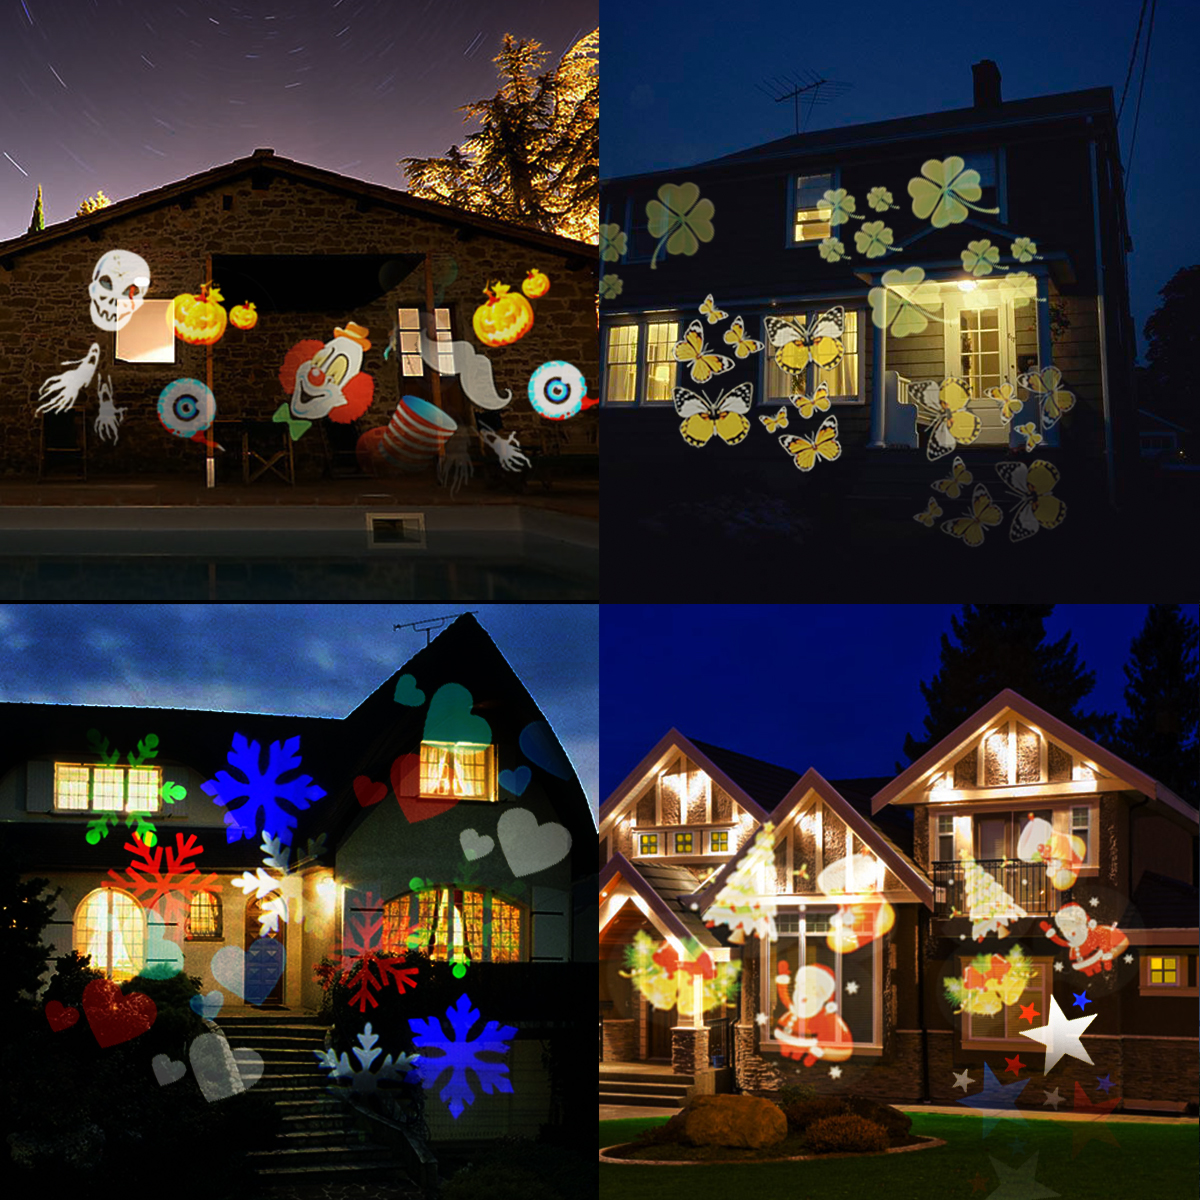 Christmas projector lightscamtoa 12 pattern led light projector christmas projector lightscamtoa outdoor led light projectorstar shower projector lightgarden lamp 12 switchable pattern lens led landscape spotlight aloadofball Gallery